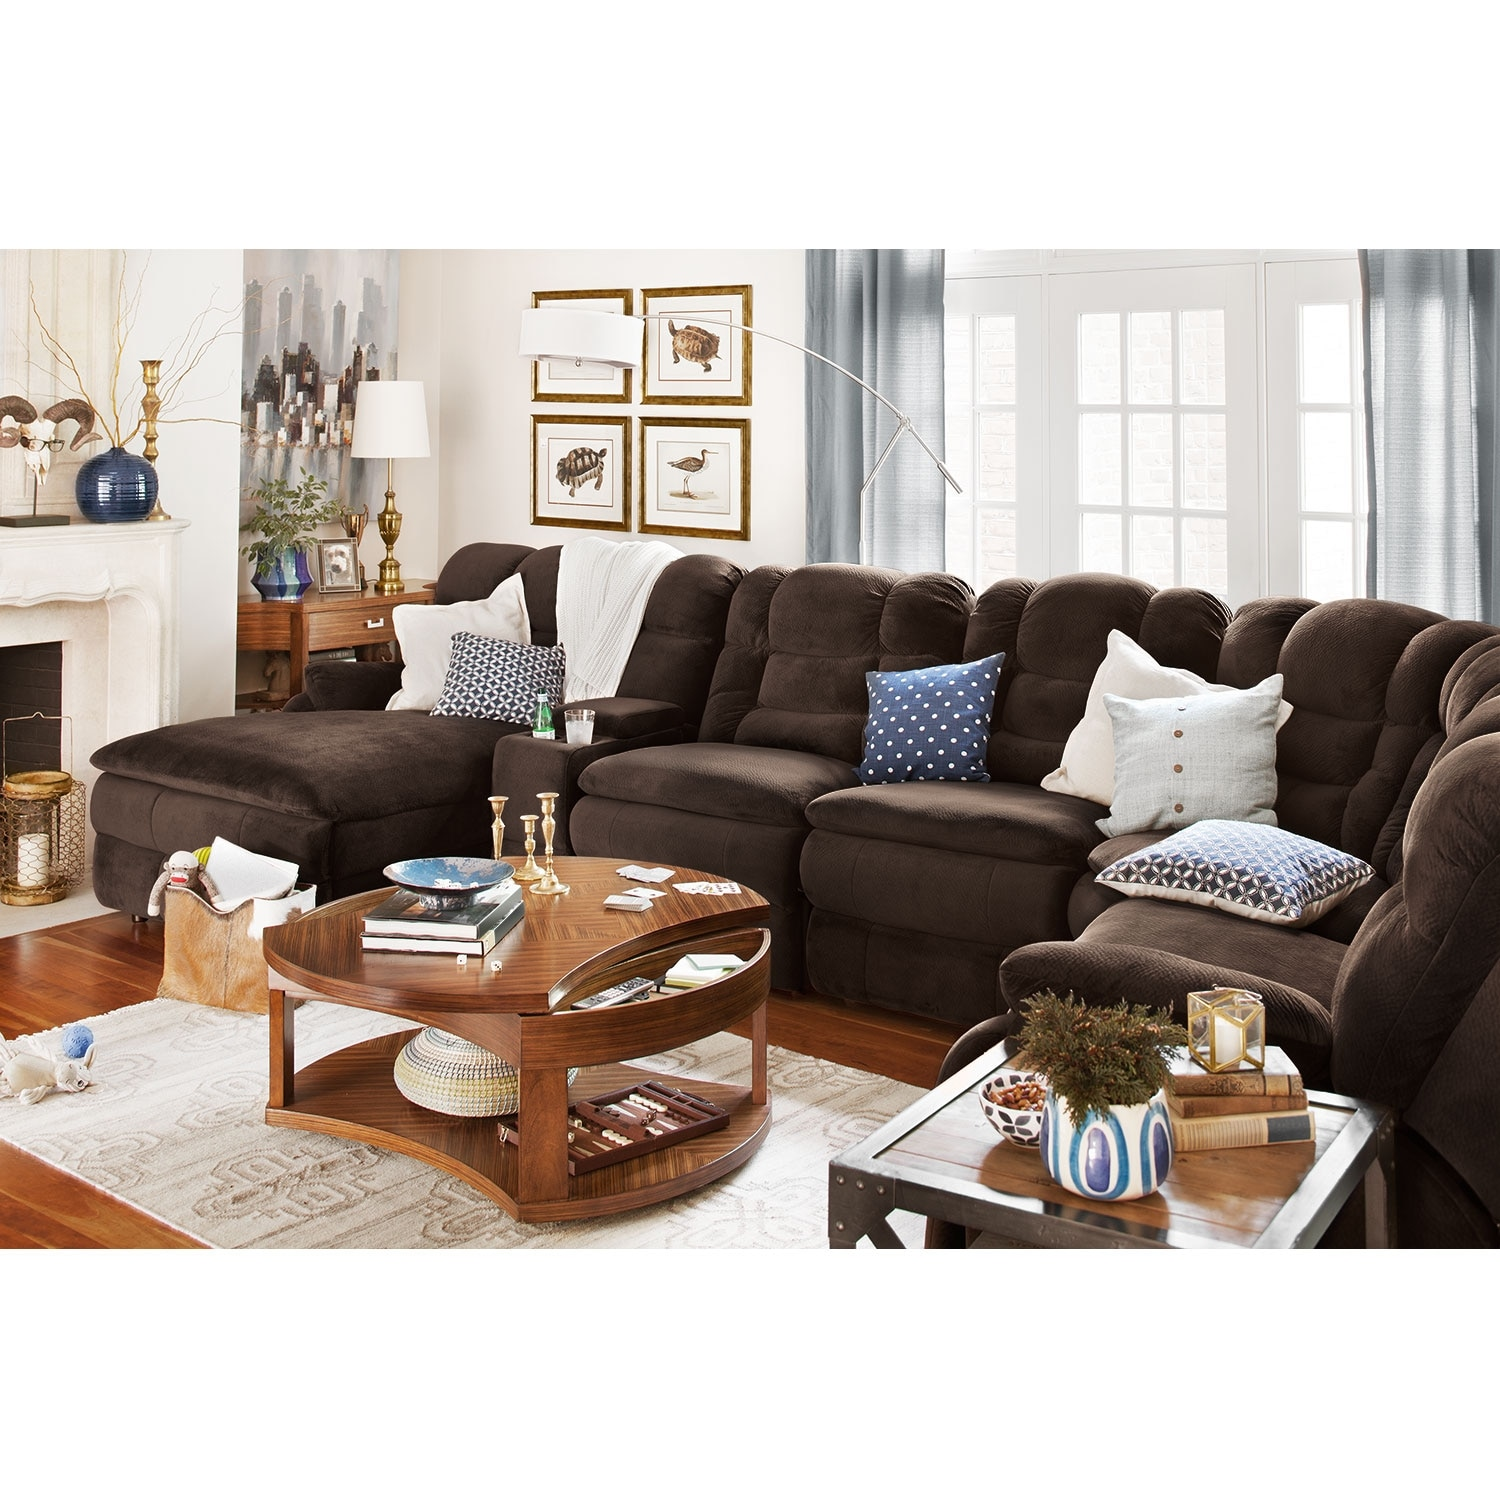 How To Disassemble Modular Sofa Sectional ]